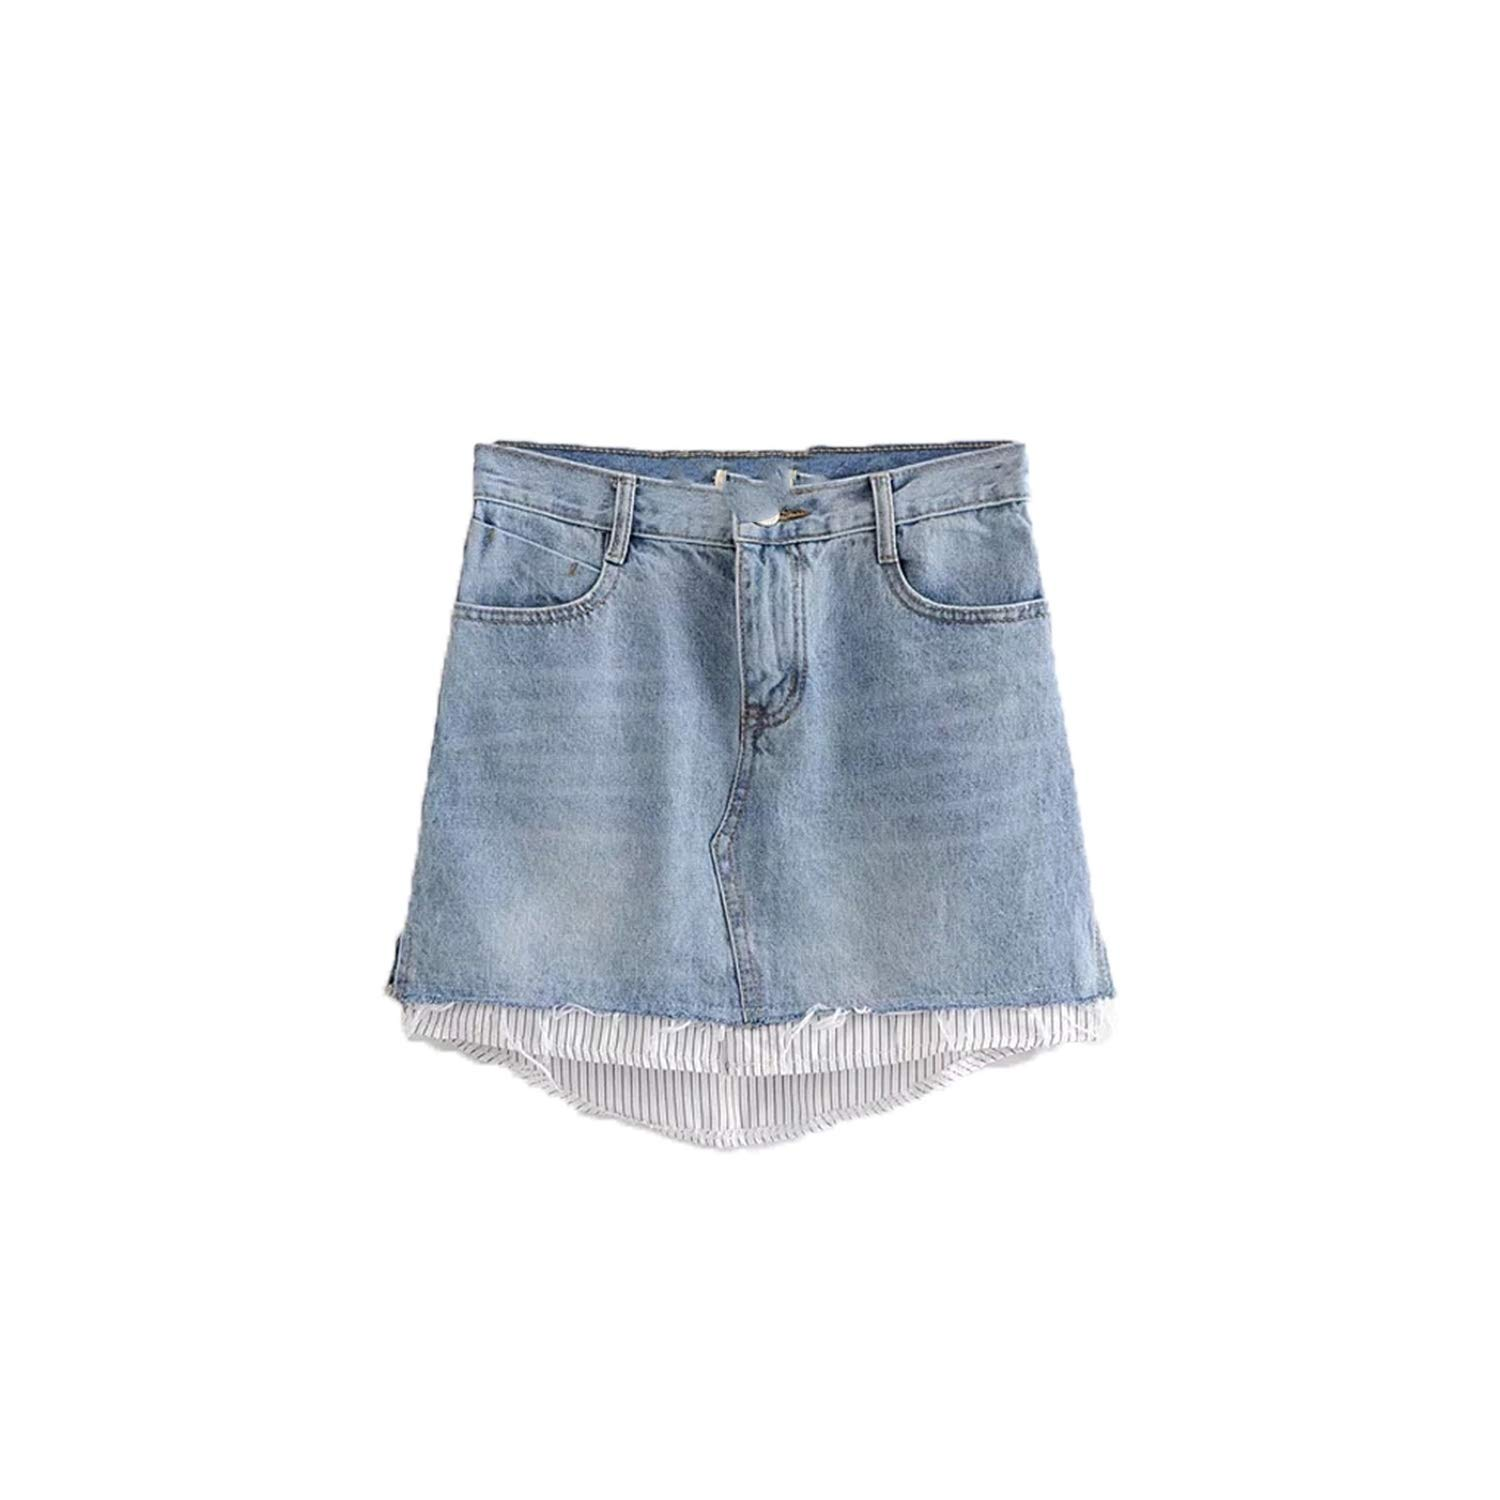 bluee Heart to hear Skirts High Street Women Denim Skirt Patchwork High Waist Ladies Streetwerr,